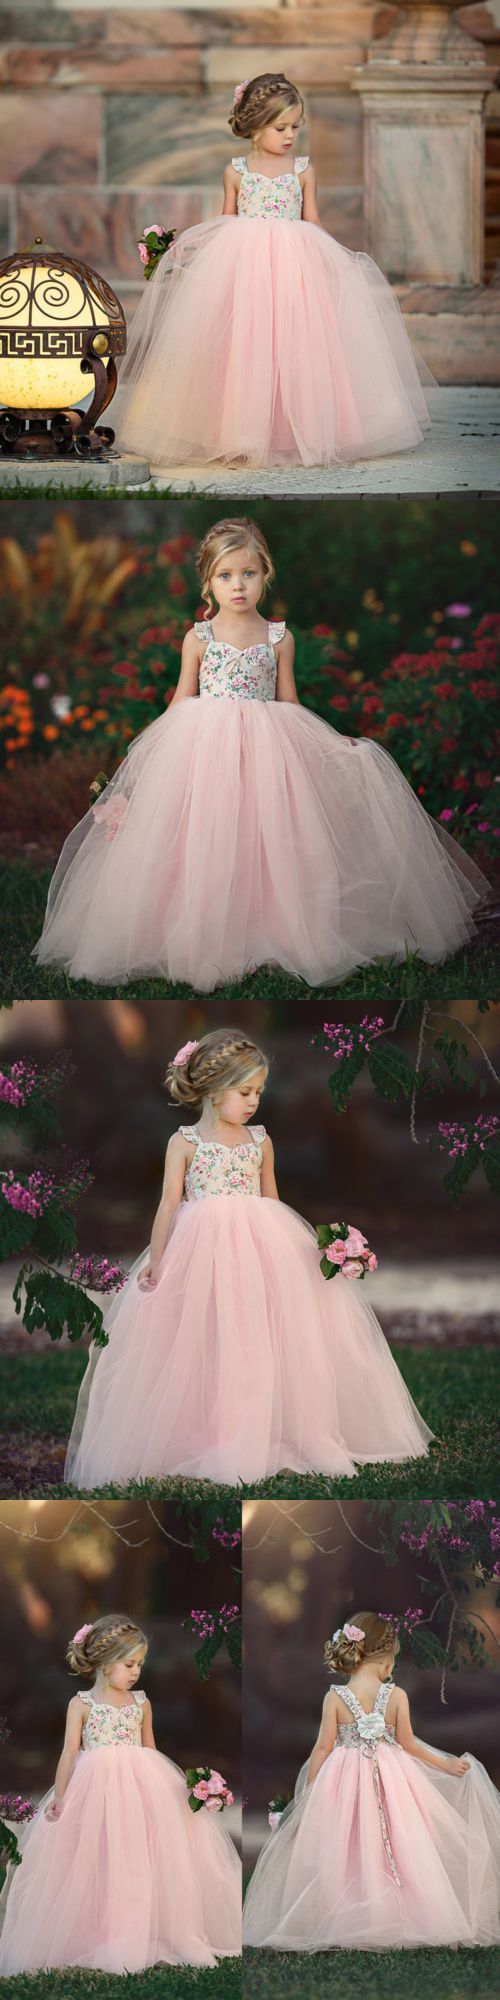 6d140dee633693 Girls Formal Occasion 3263: Us Pageant Flower Girl Dress Kids Fancy Wedding  Bridesmaid Gown Formal Dresses -> BUY IT NOW ONLY: $12.88 on eBay!